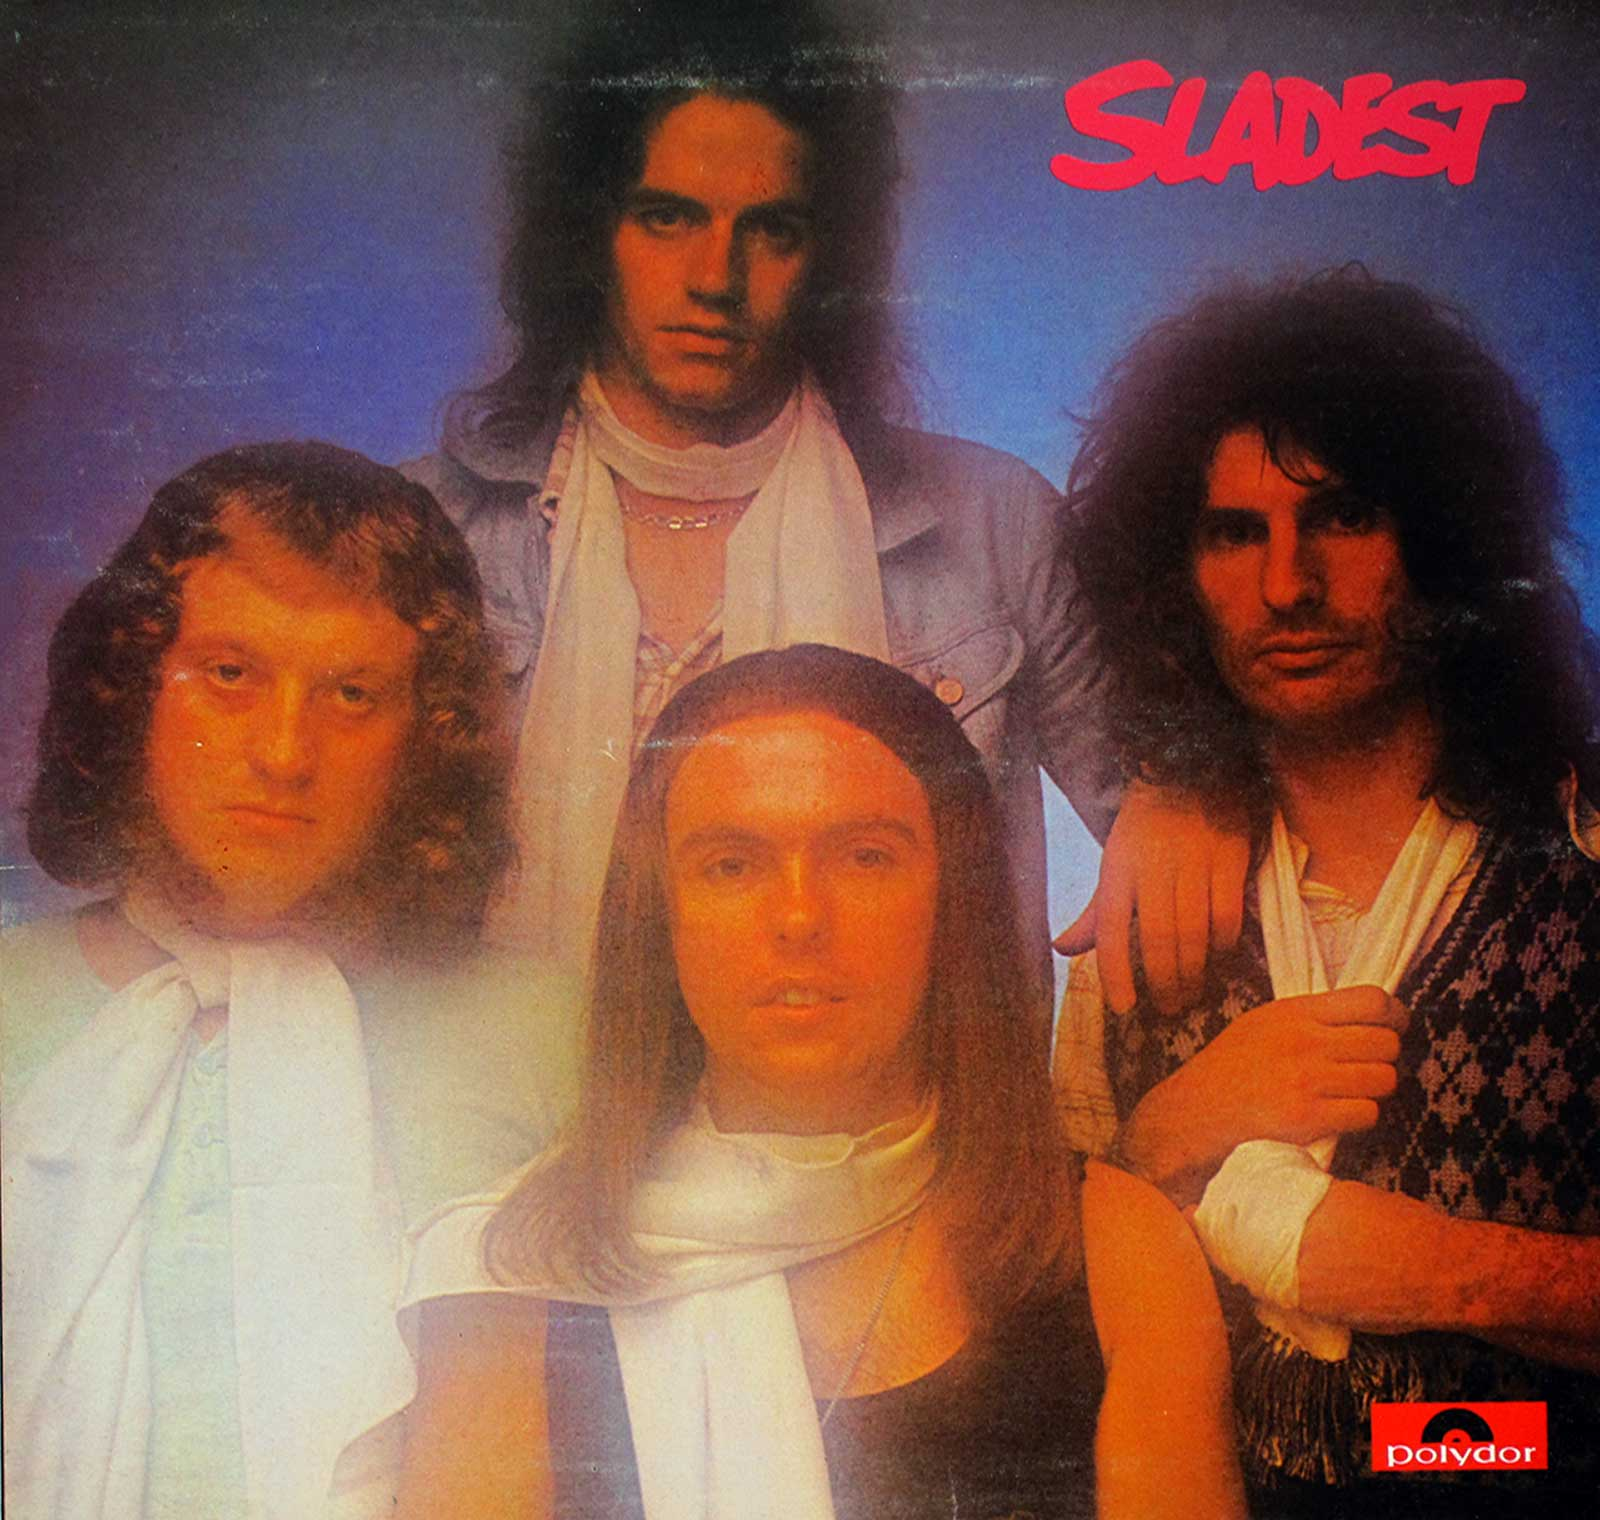 large photo of the album front cover of: SLADE - Sladest